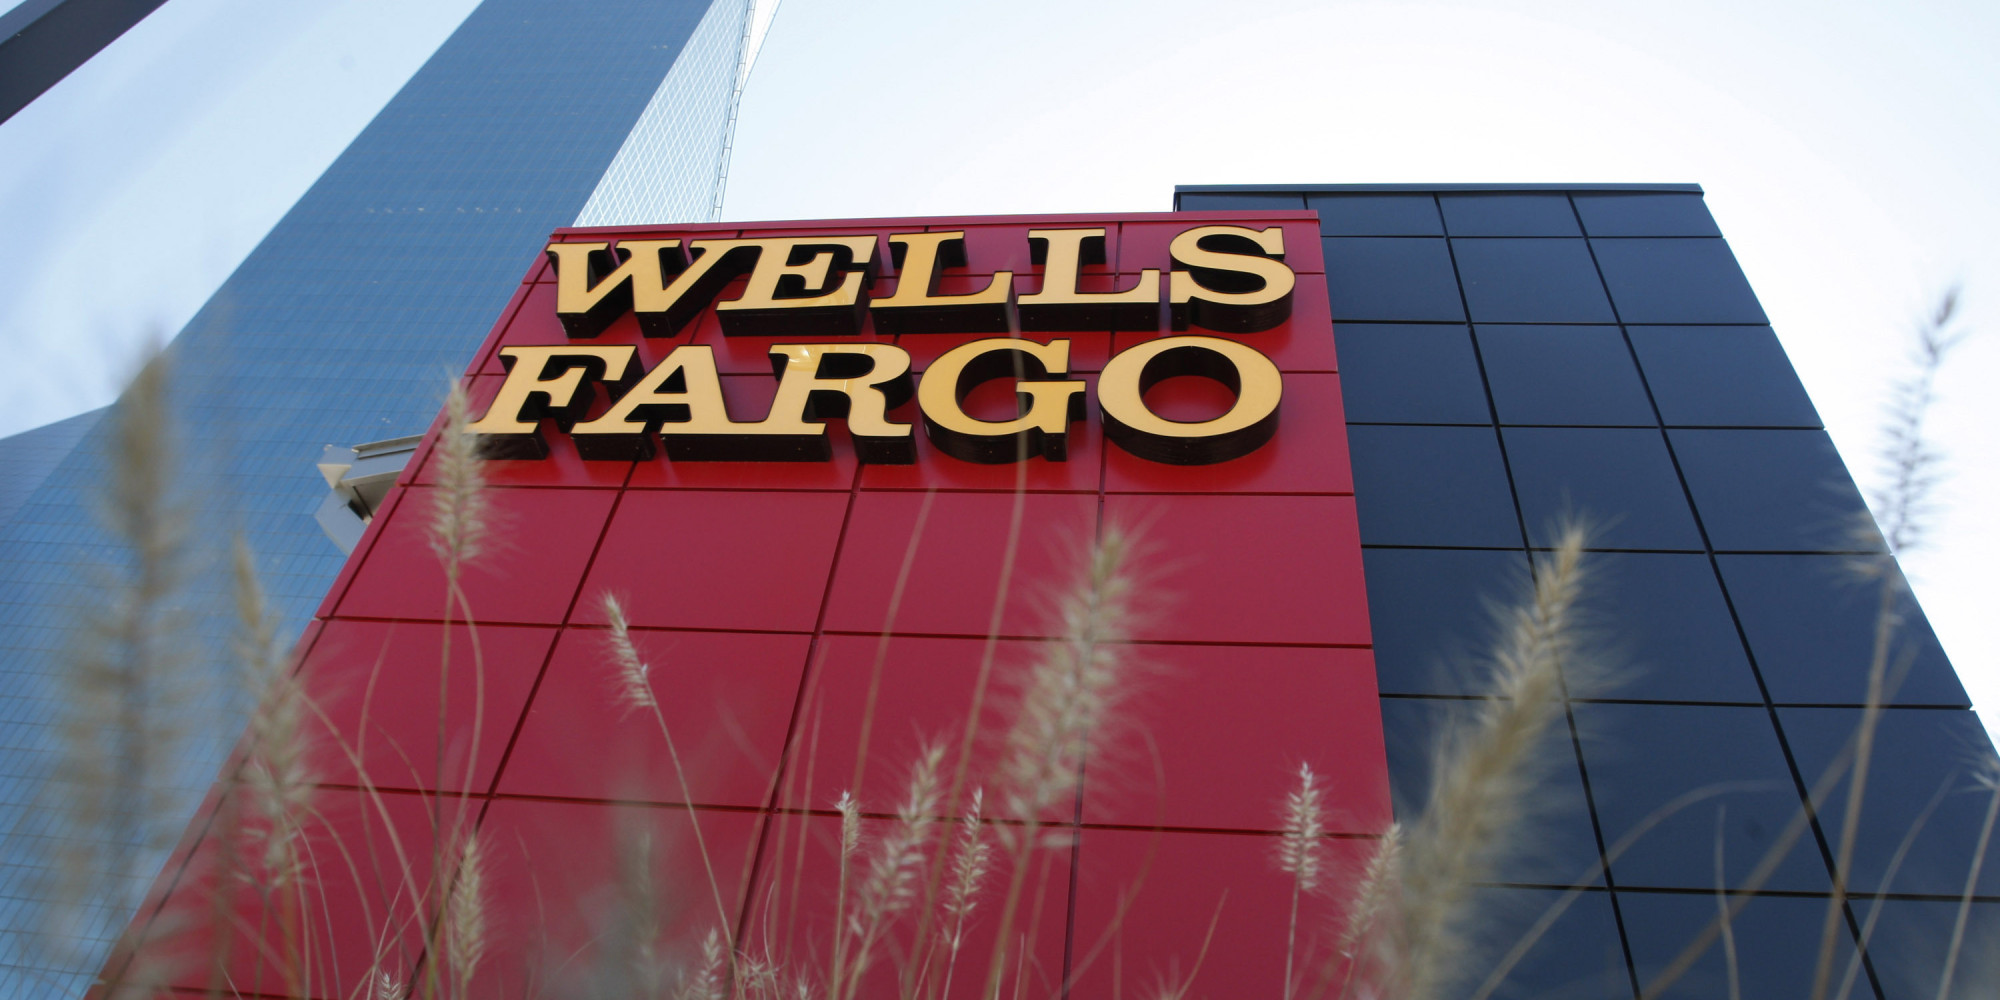 Wells Fargo Had A Bad Day. That's A Start. | HuffPost